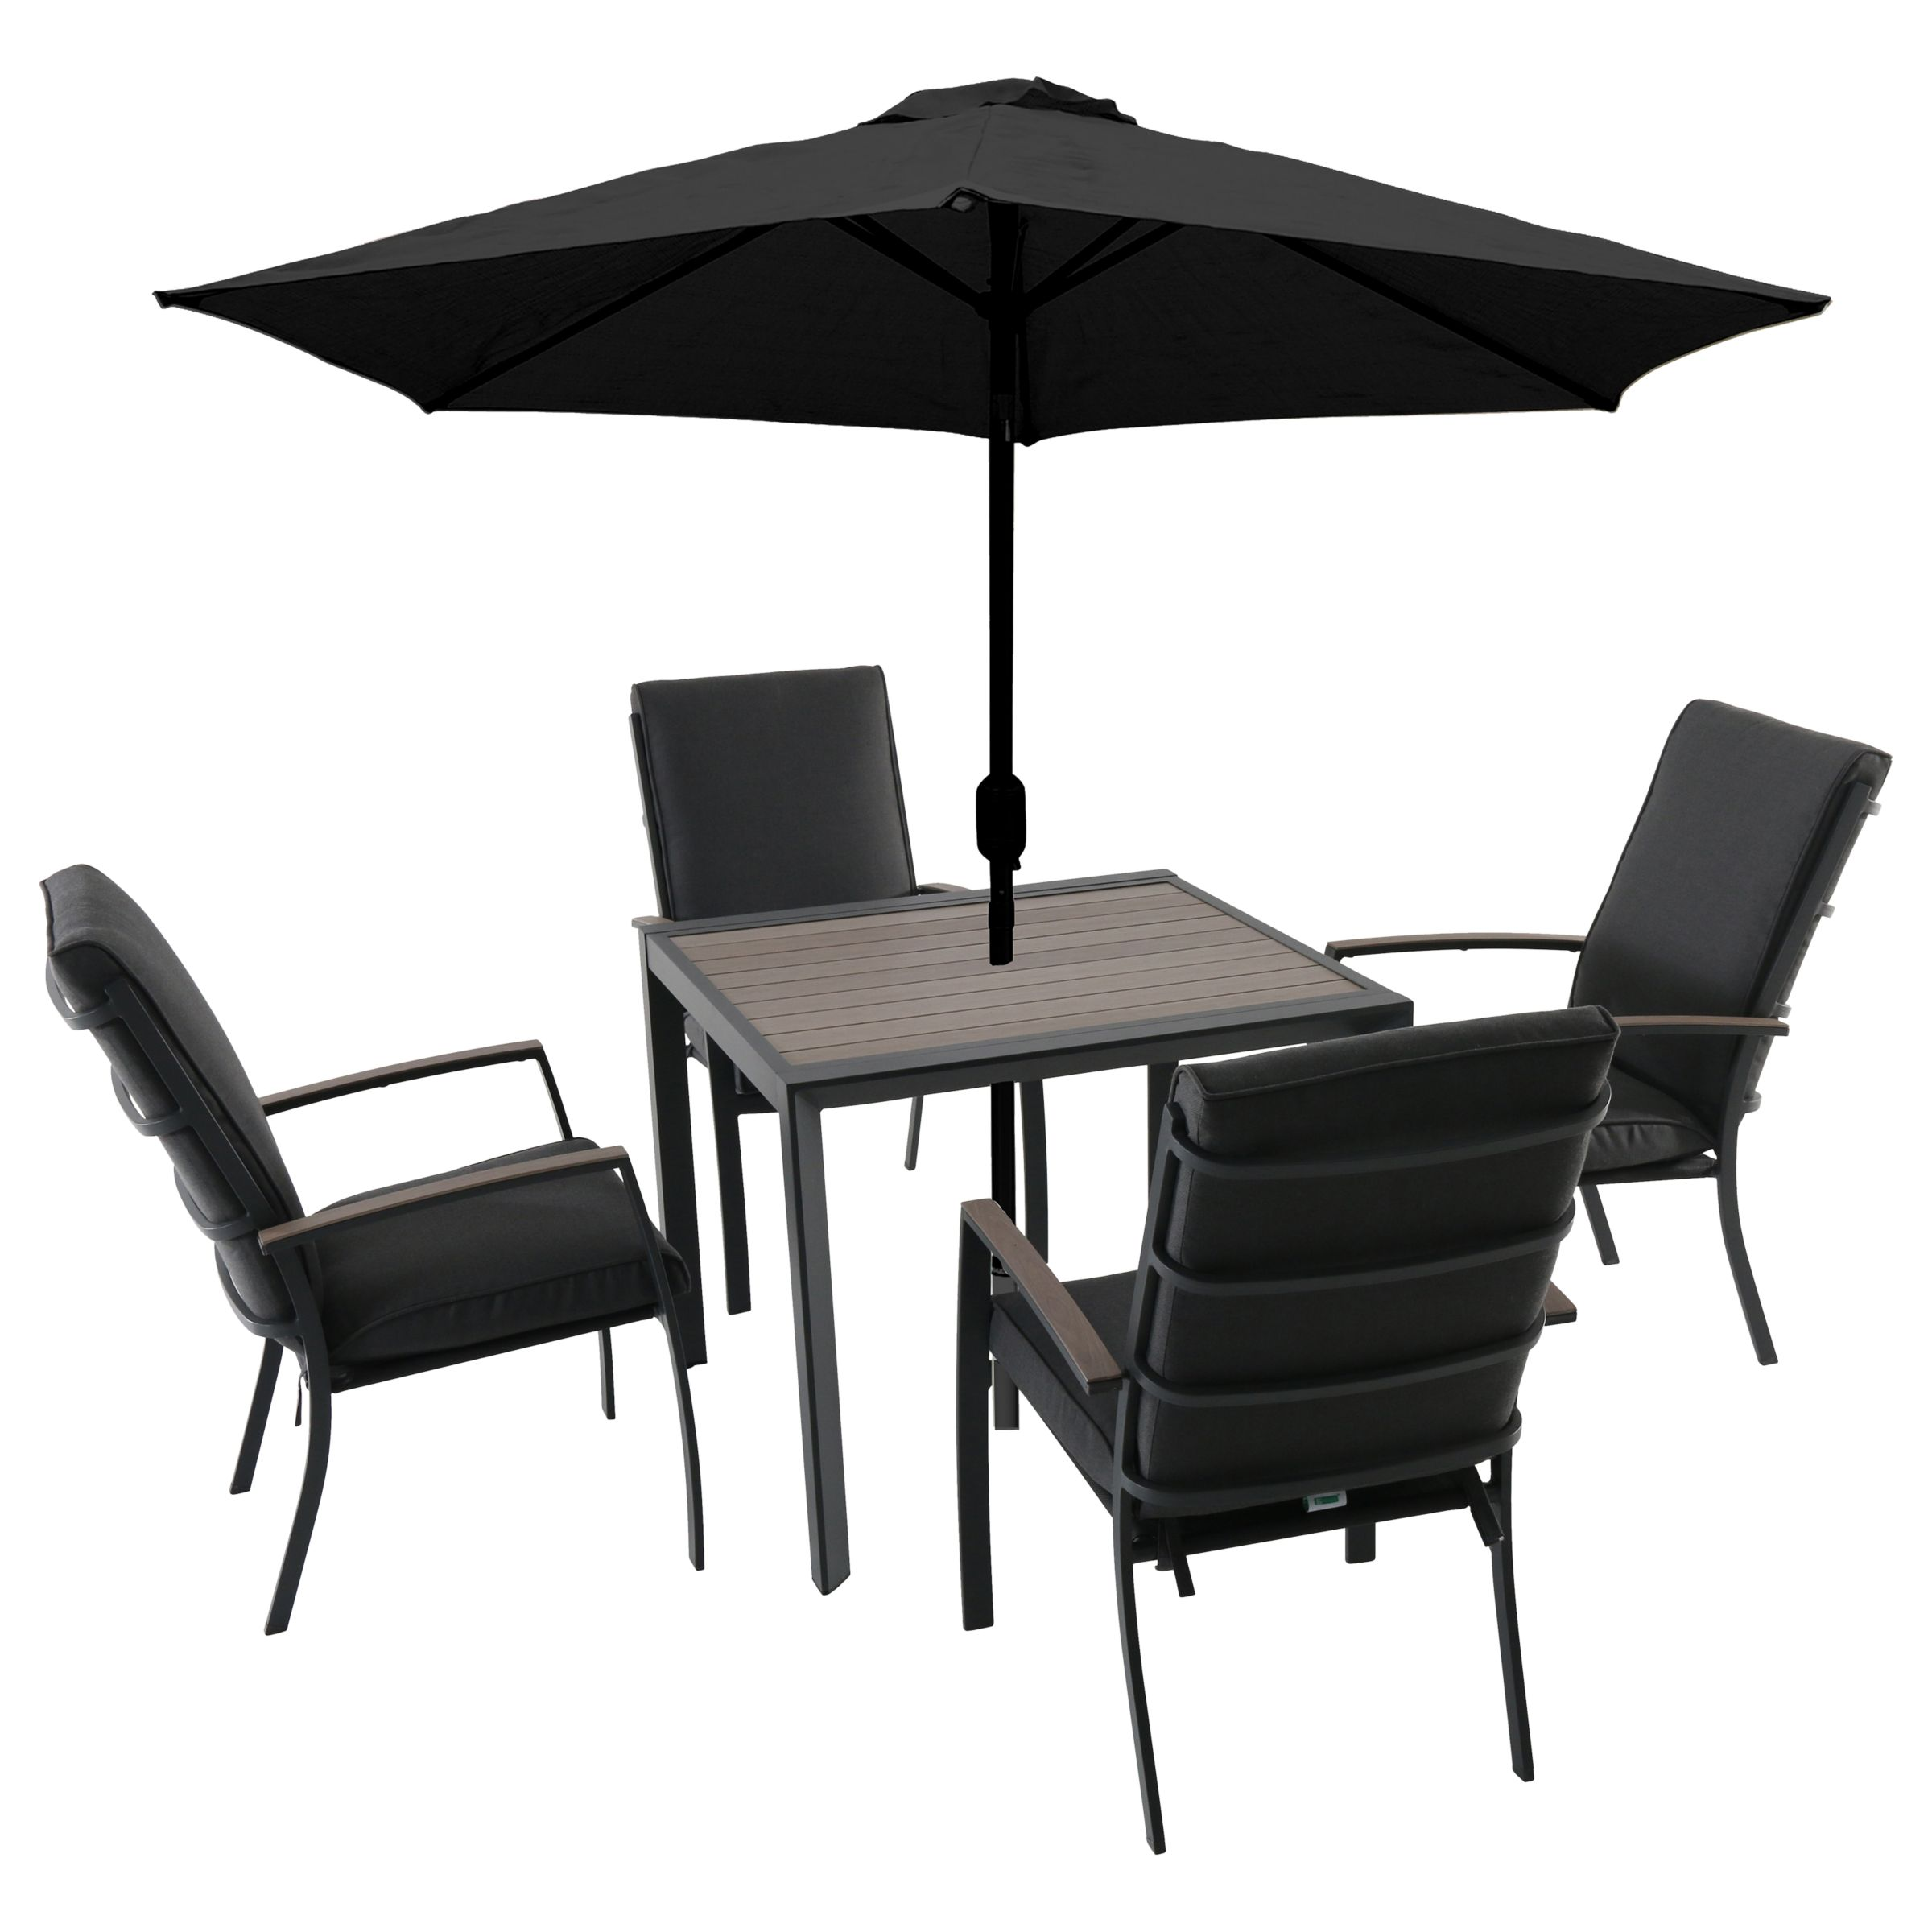 4 seater outdoor table and chairs french country chair lg milan garden dining set